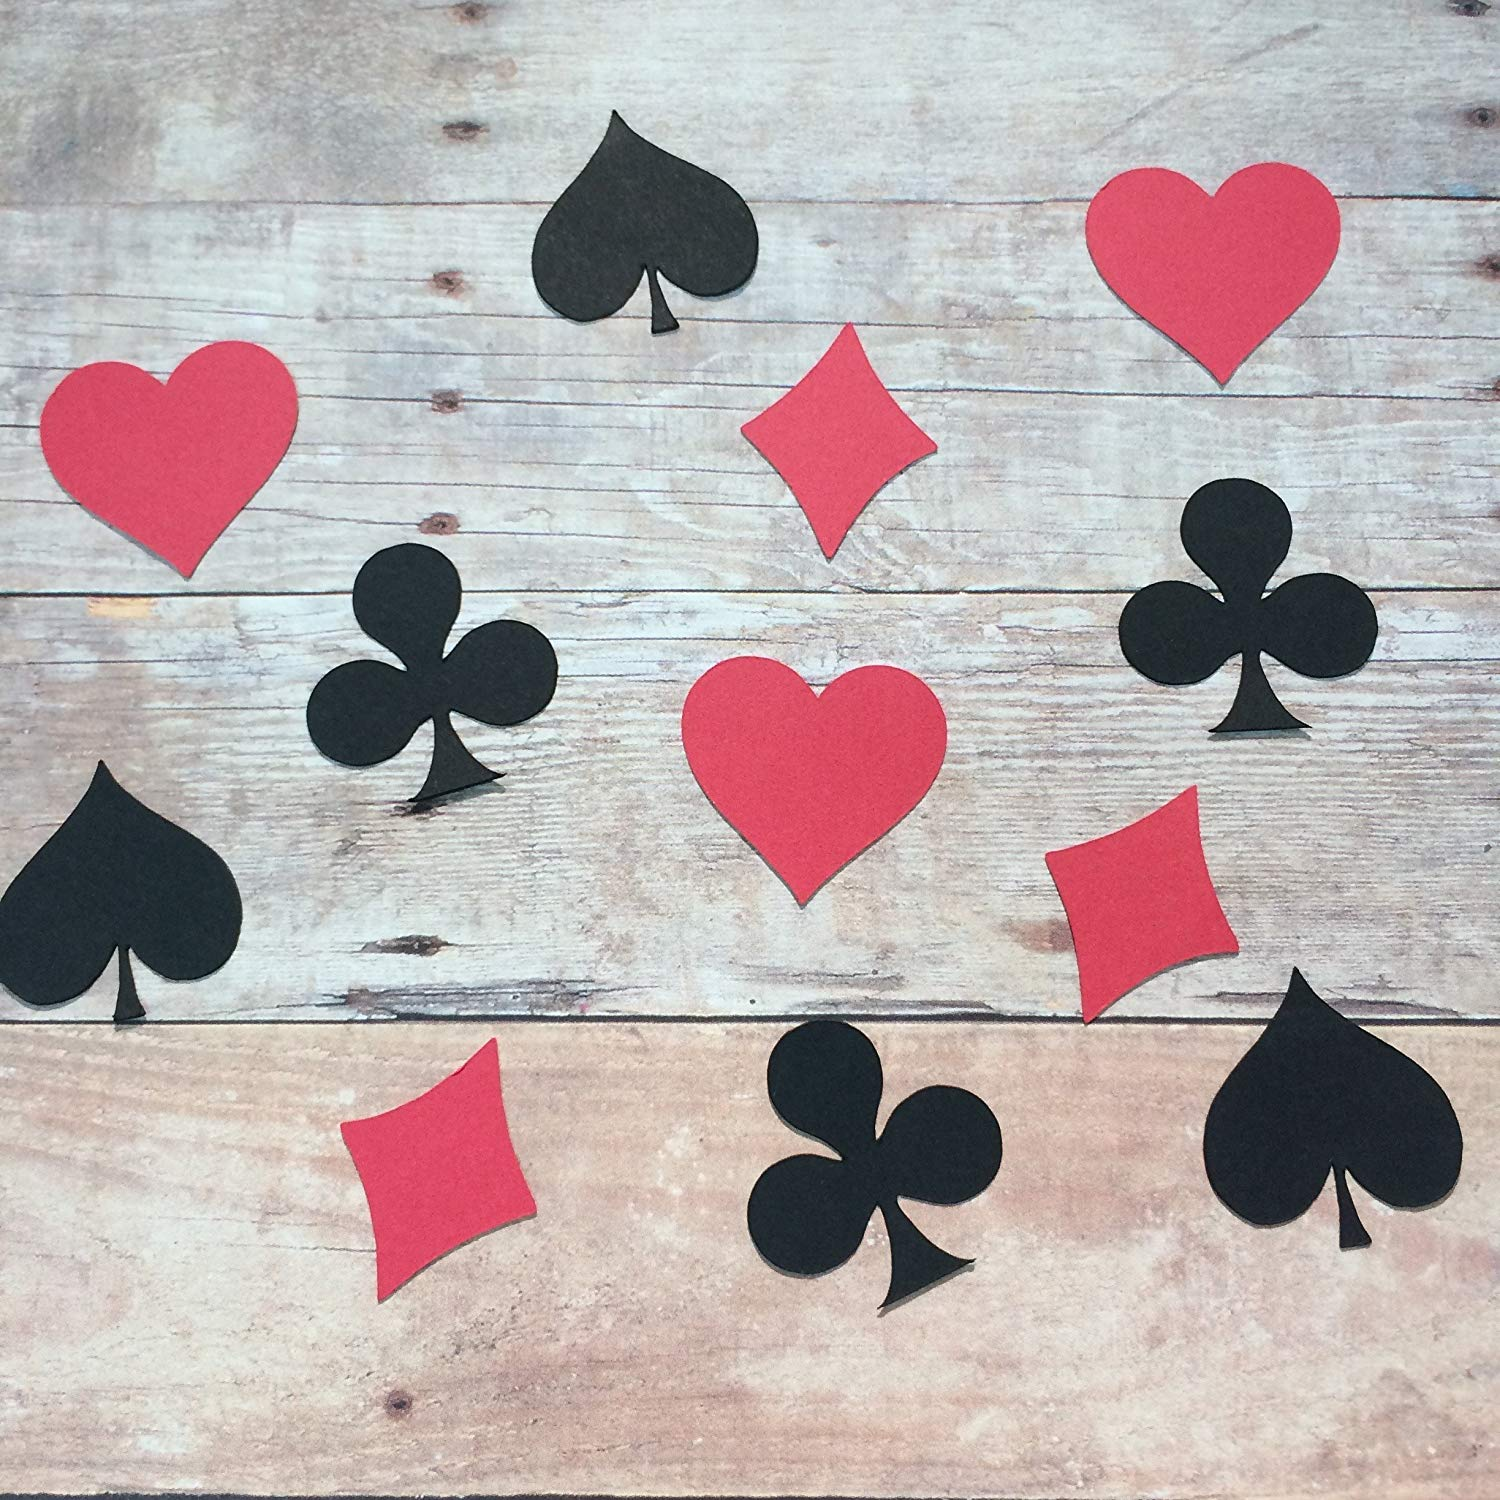 1in Playing Card Confetti Set, Heart Outs, Diamond Cut Out, Spade Cut Out, Club Cut Outs, Poker Decorations, Card Decorations, Poker Party Supplies, Game Night Party Supplies, Casino Theme